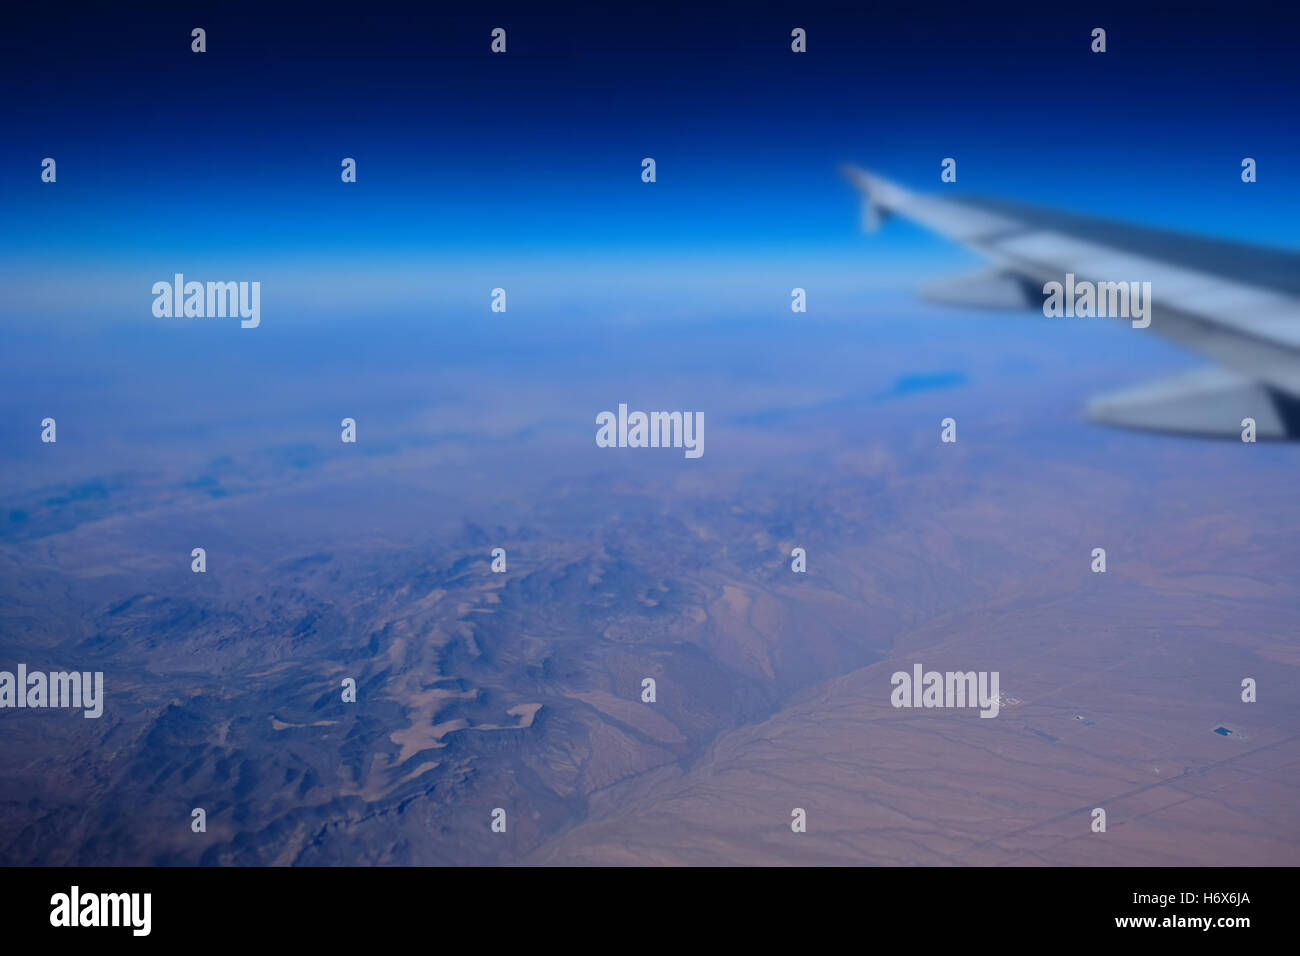 Airplane flying over desert mountains - Stock Image